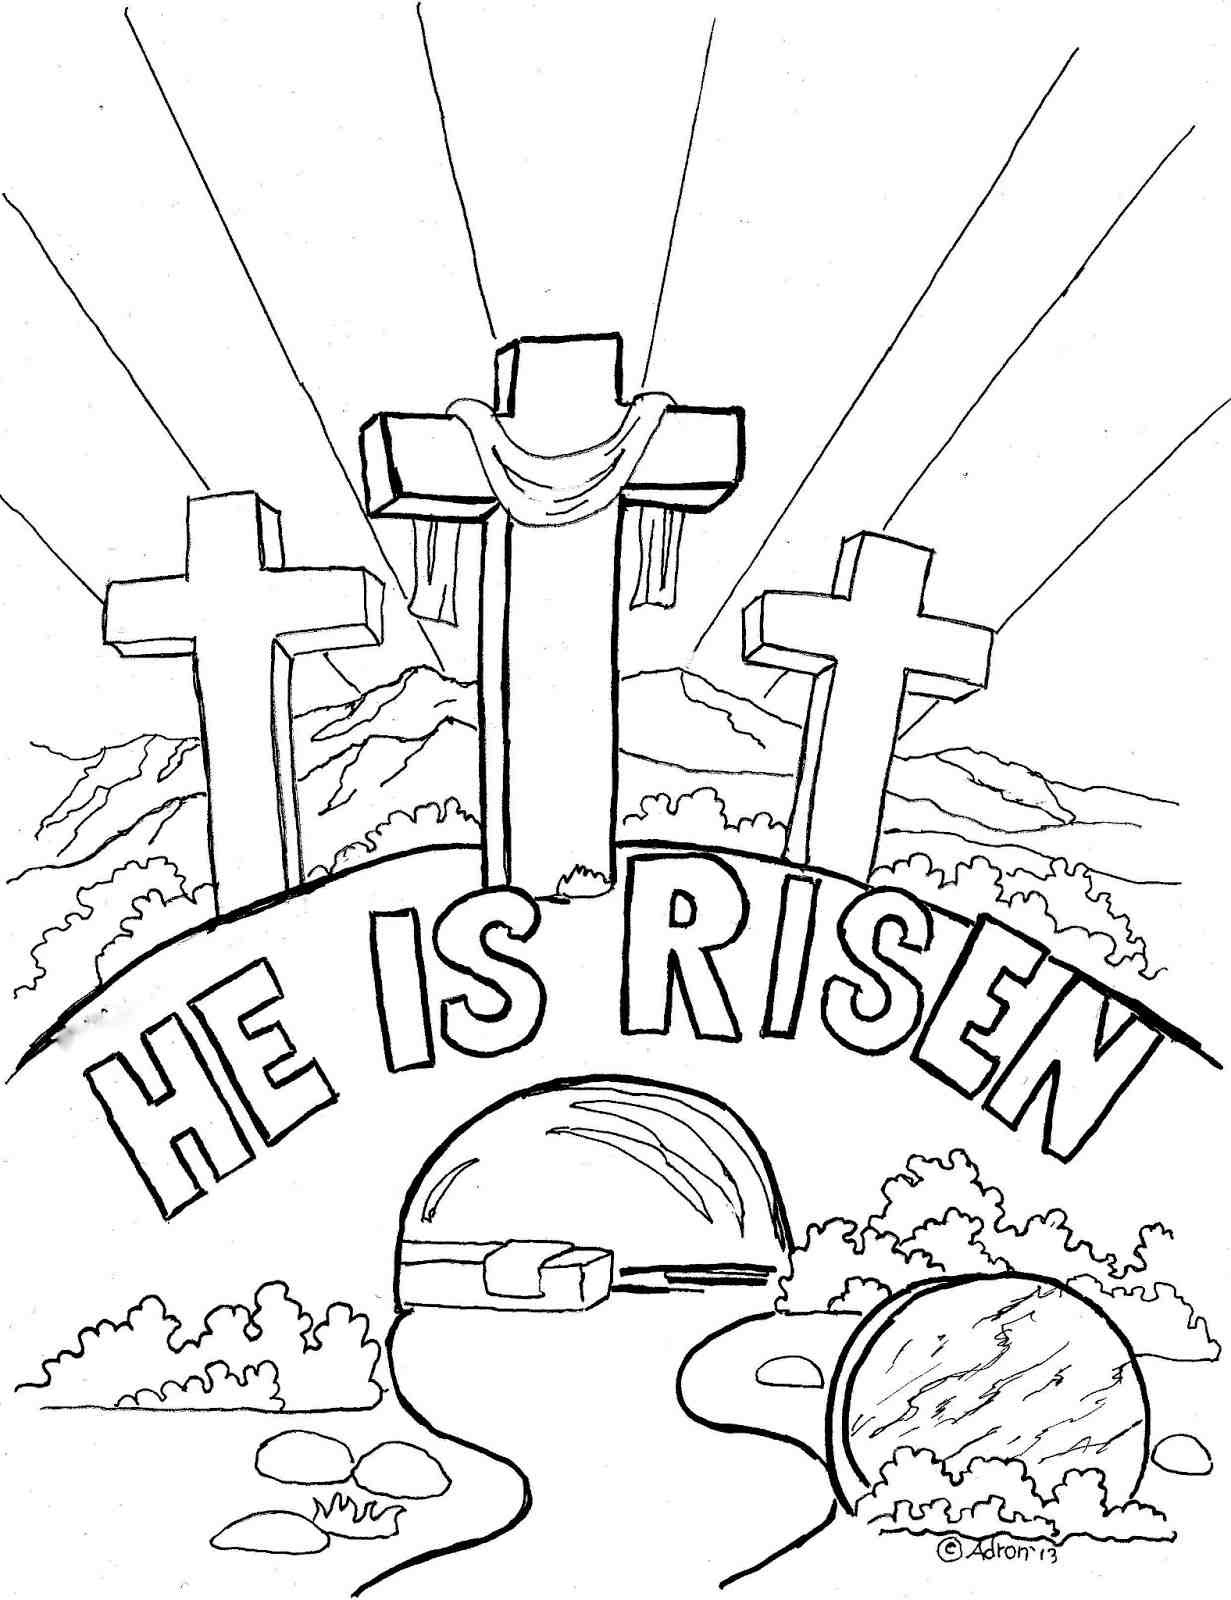 Free Printable Religious Worksheets Free Childrens Christian Coloring Pages Printable for Kids